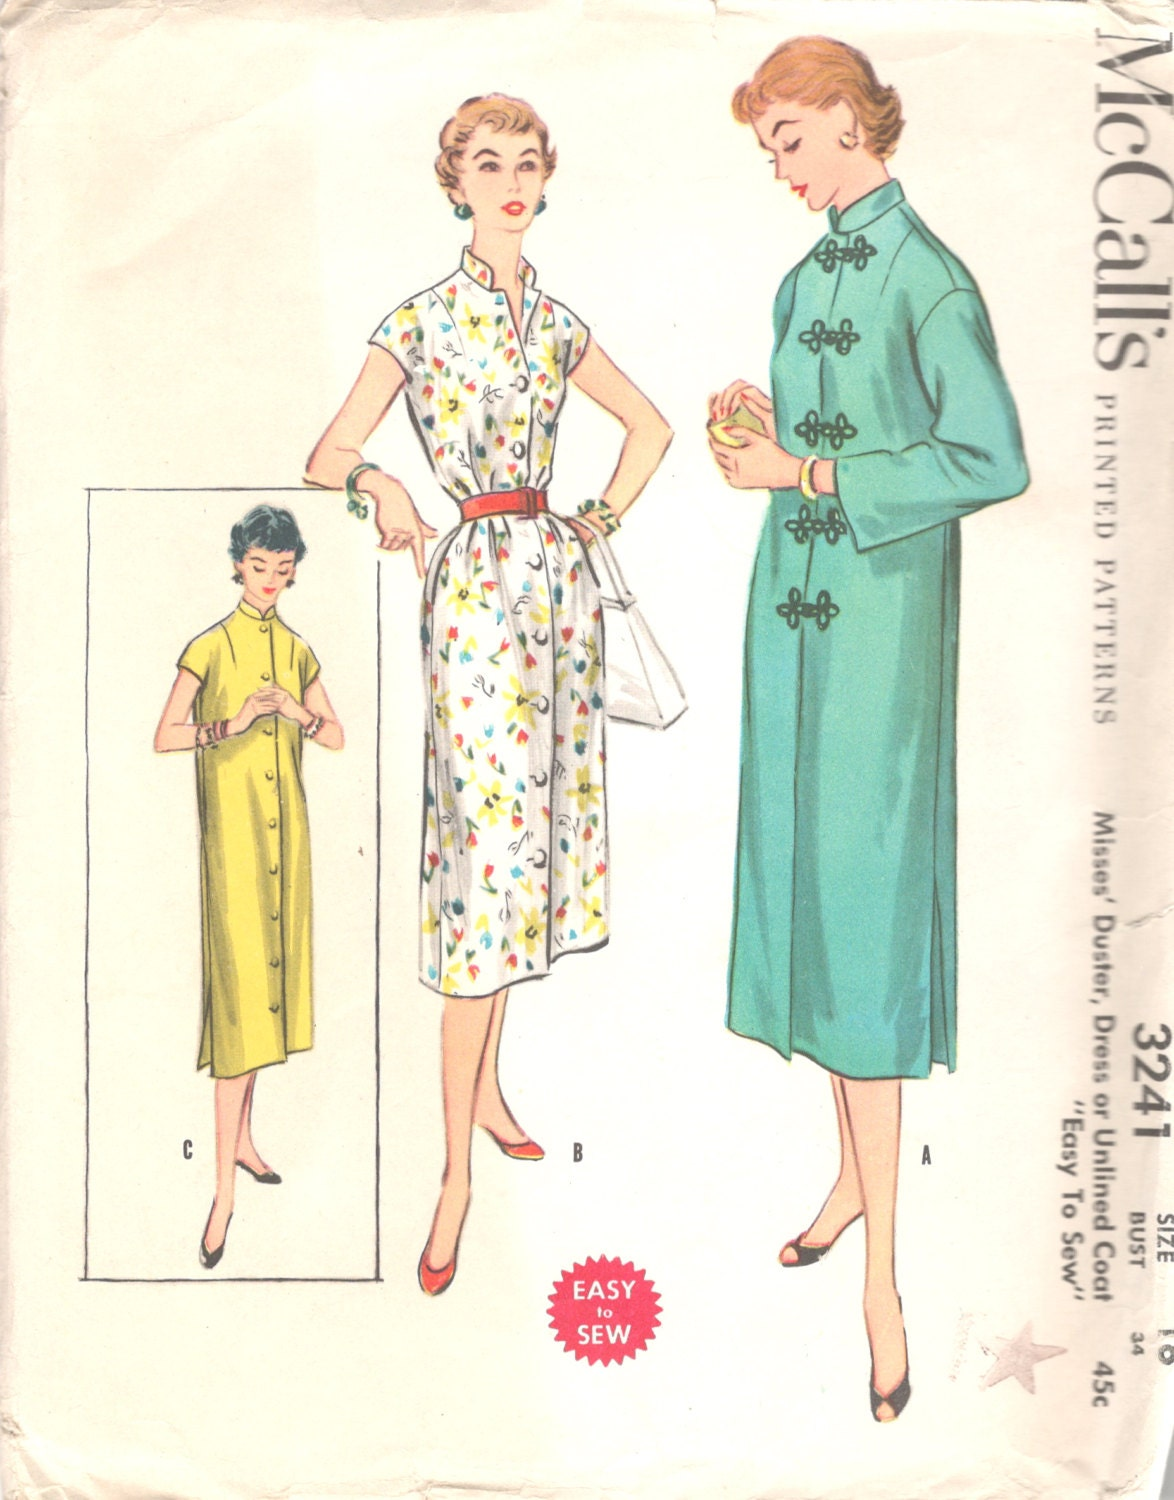 Mccalls 3241 1950s misses oriental duster tubular dress mandarin sold by mbchills jeuxipadfo Image collections